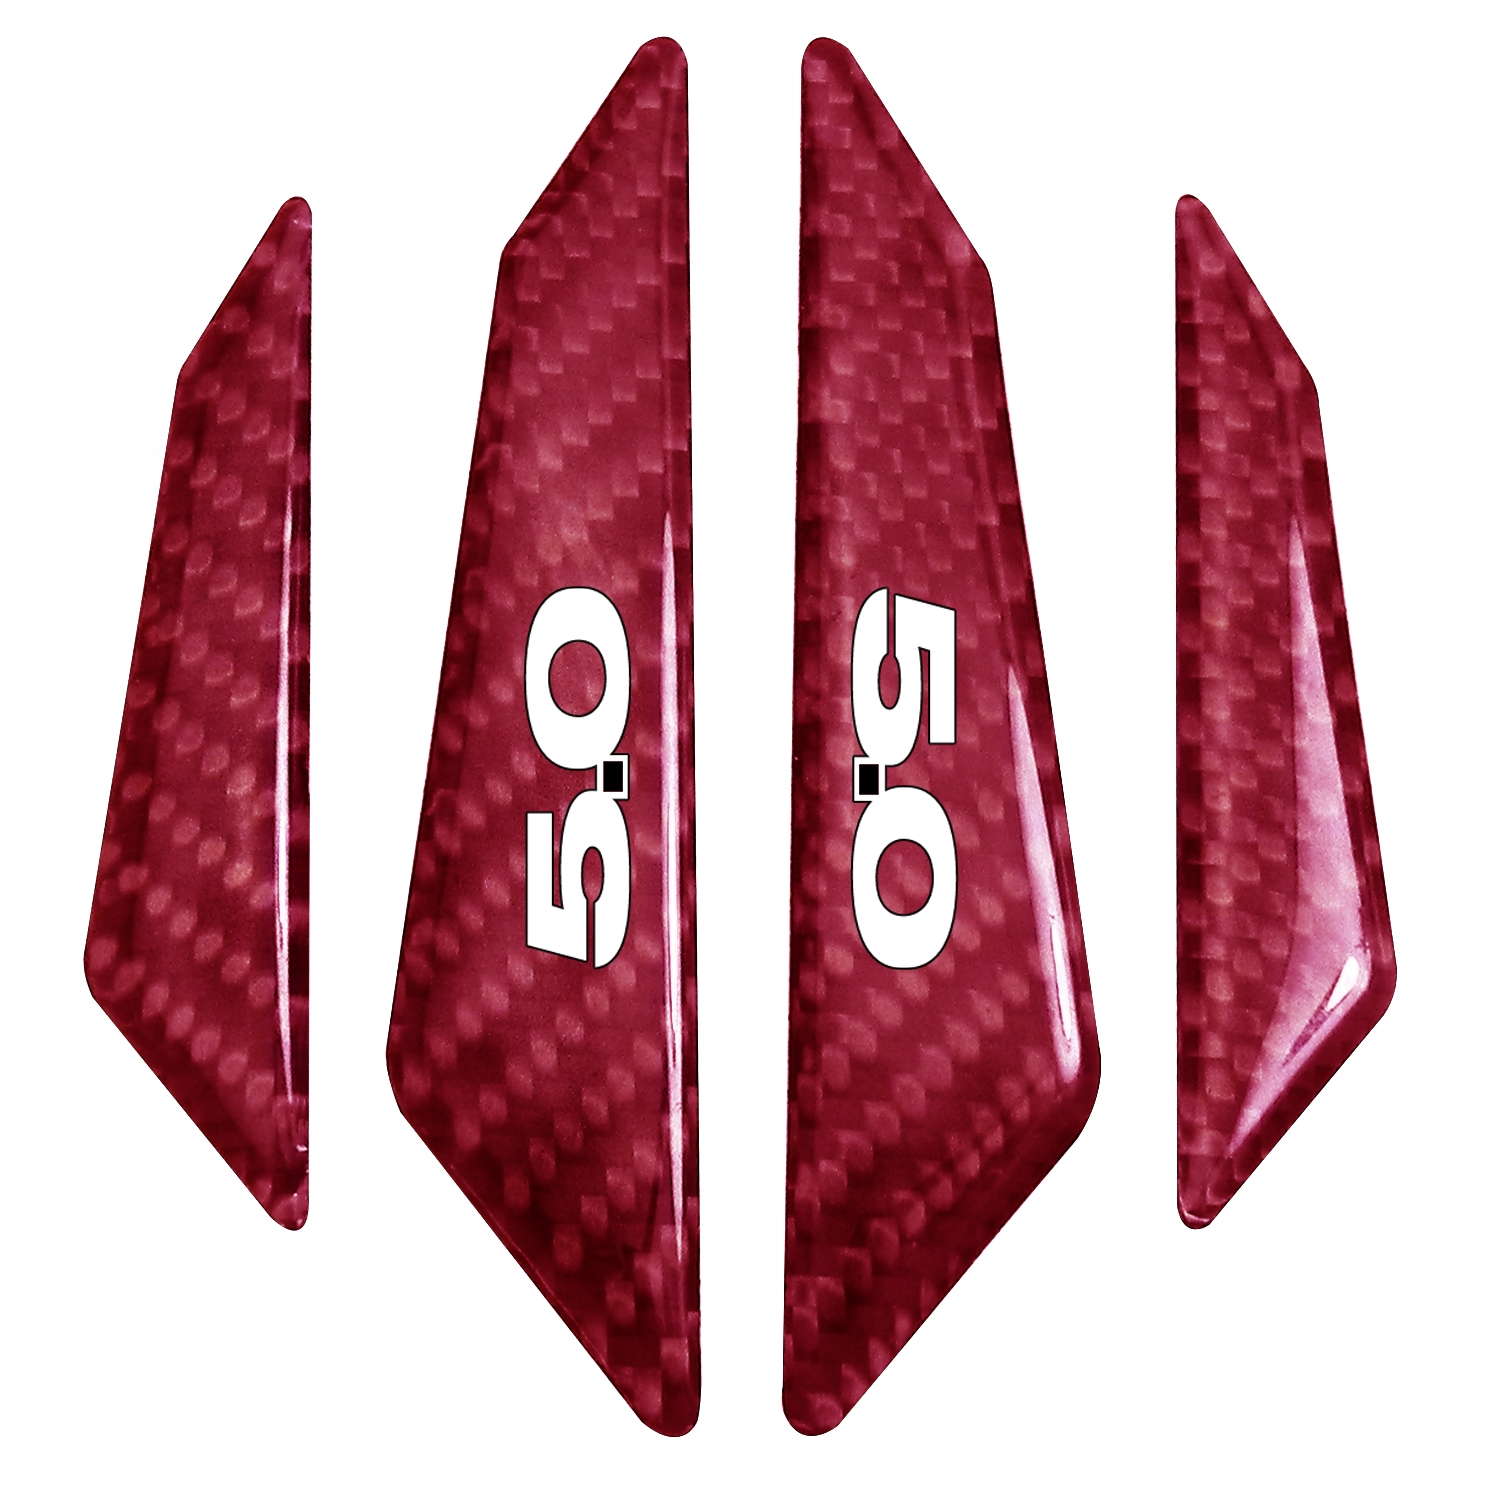 Ford Mustang 5.0 Real Red Carbon Fiber Door Edge Guard Decal